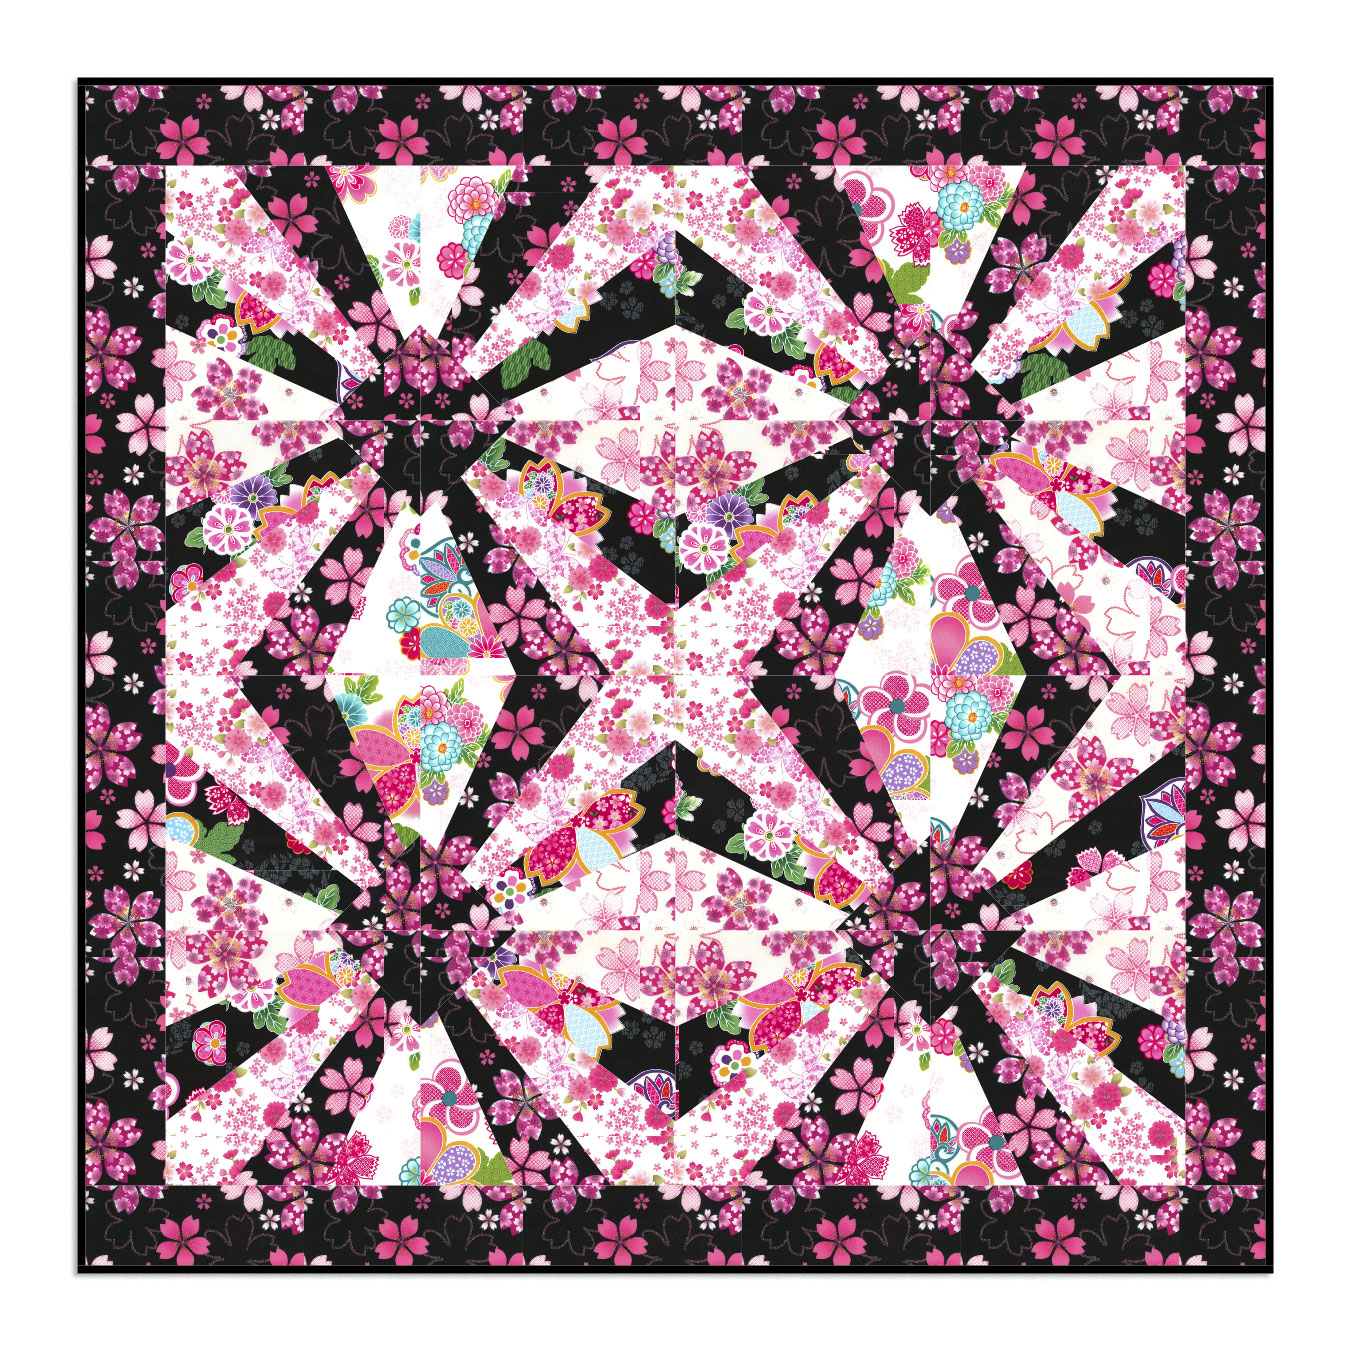 Quilt Patterns For Homespun Fabric : Sakura Wallhanging Kits by Cathy Johnson Kind